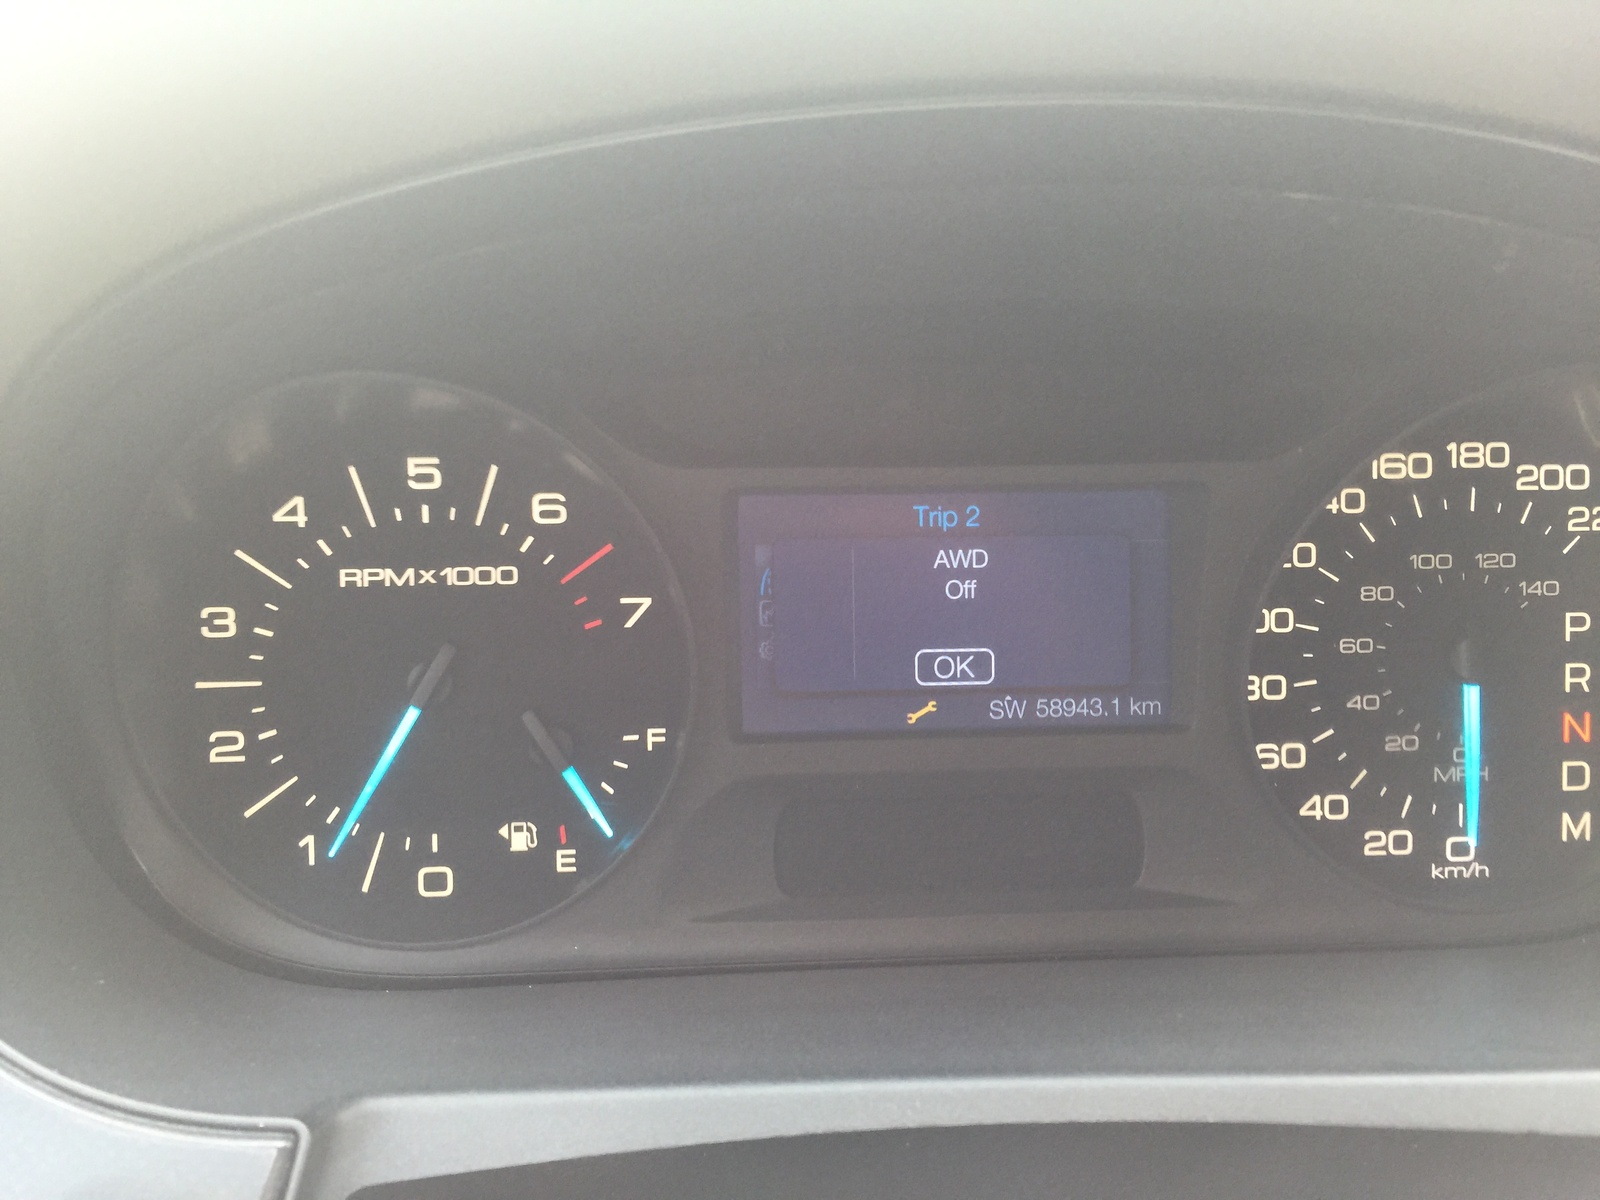 Ford Edge Questions - Loss Of Power While Driving